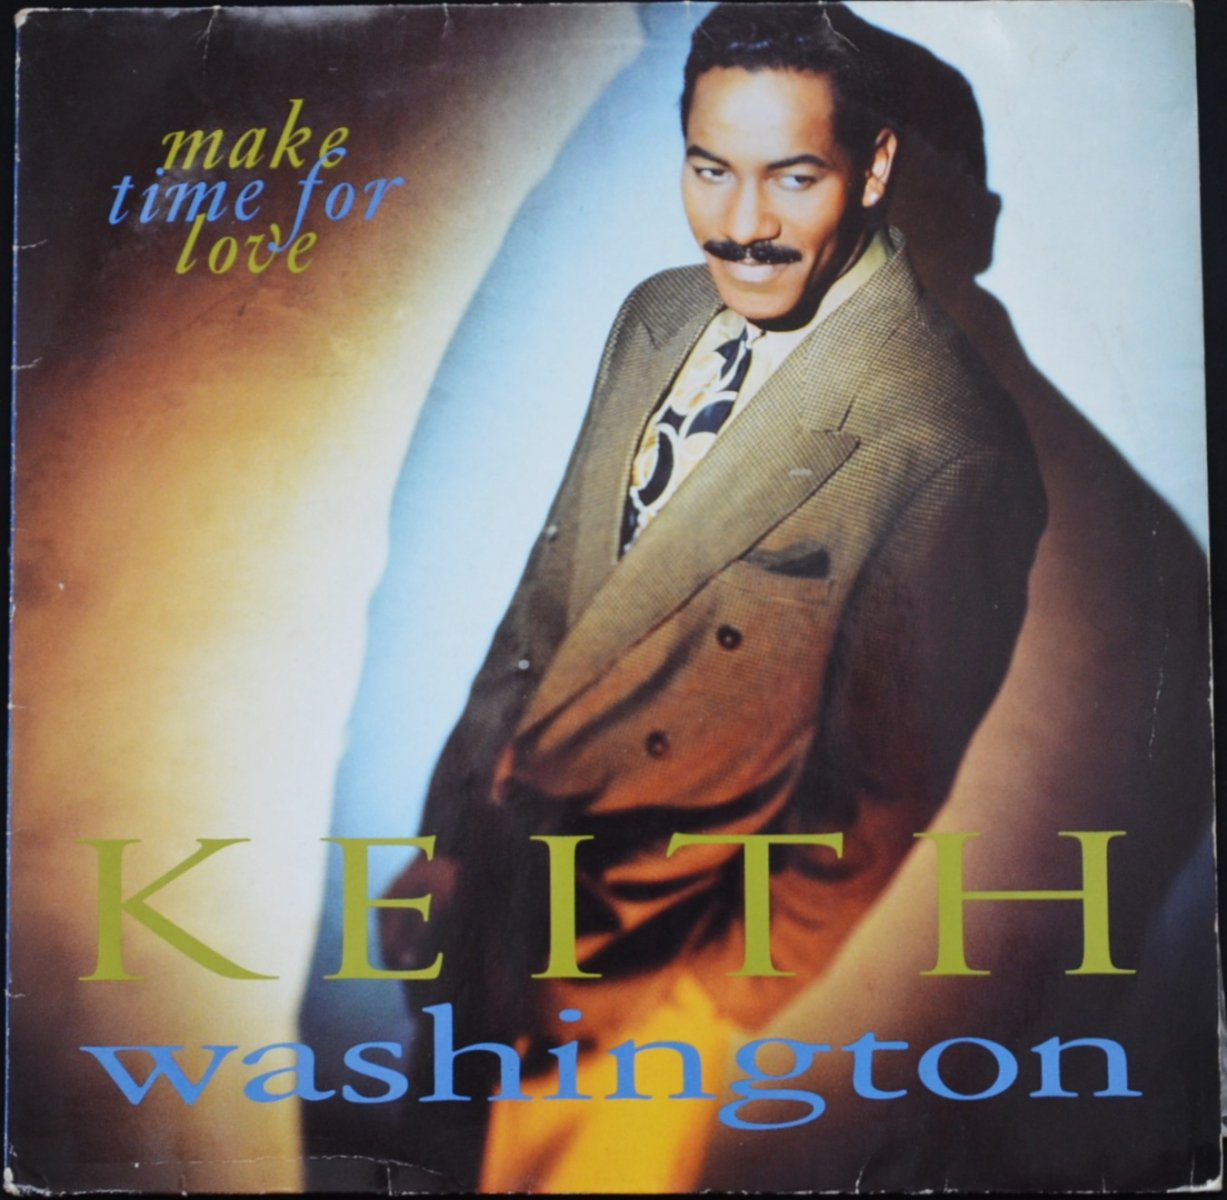 KEITH WASHINGTON ‎/ MAKE TIME FOR LOVE (1LP)